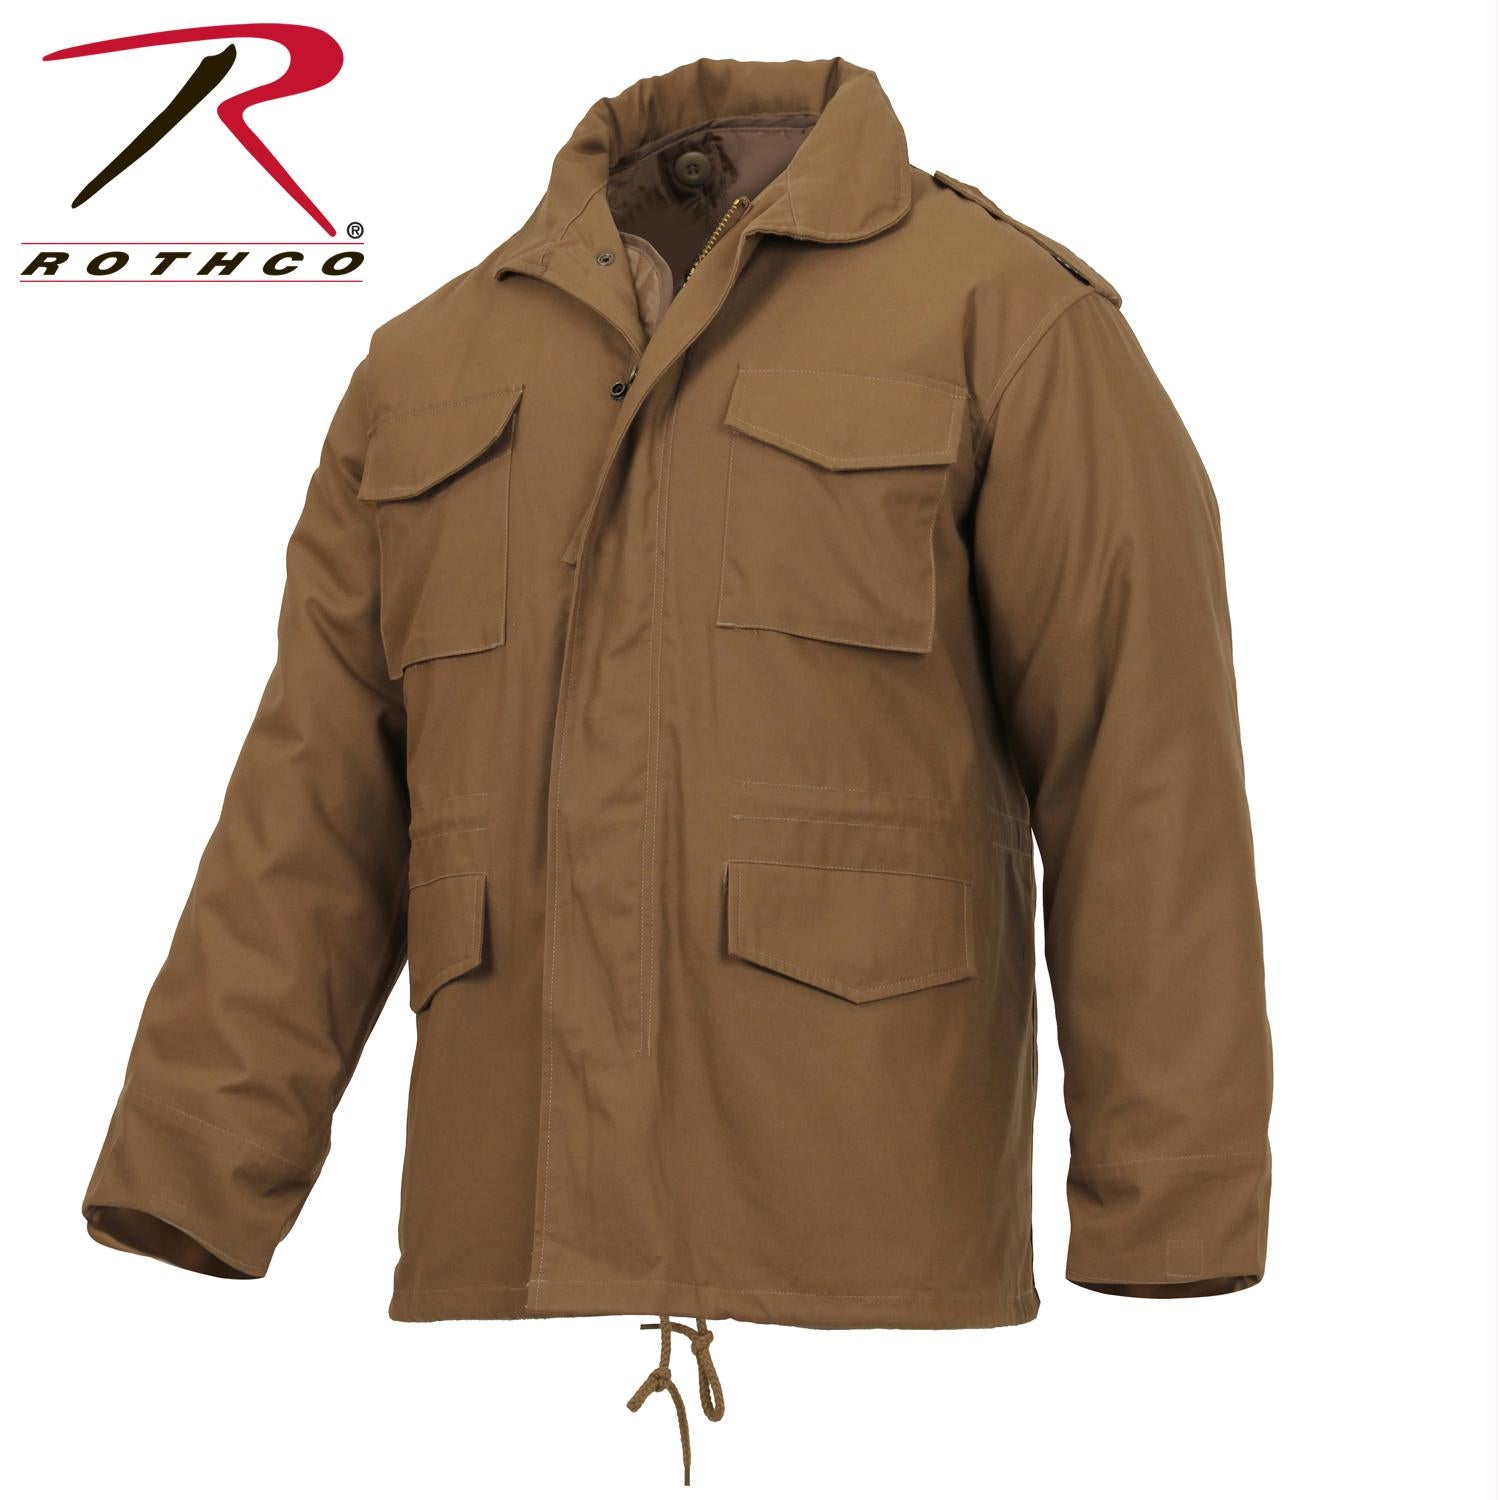 Rothco M-65 Field Jacket - Coyote Brown / S